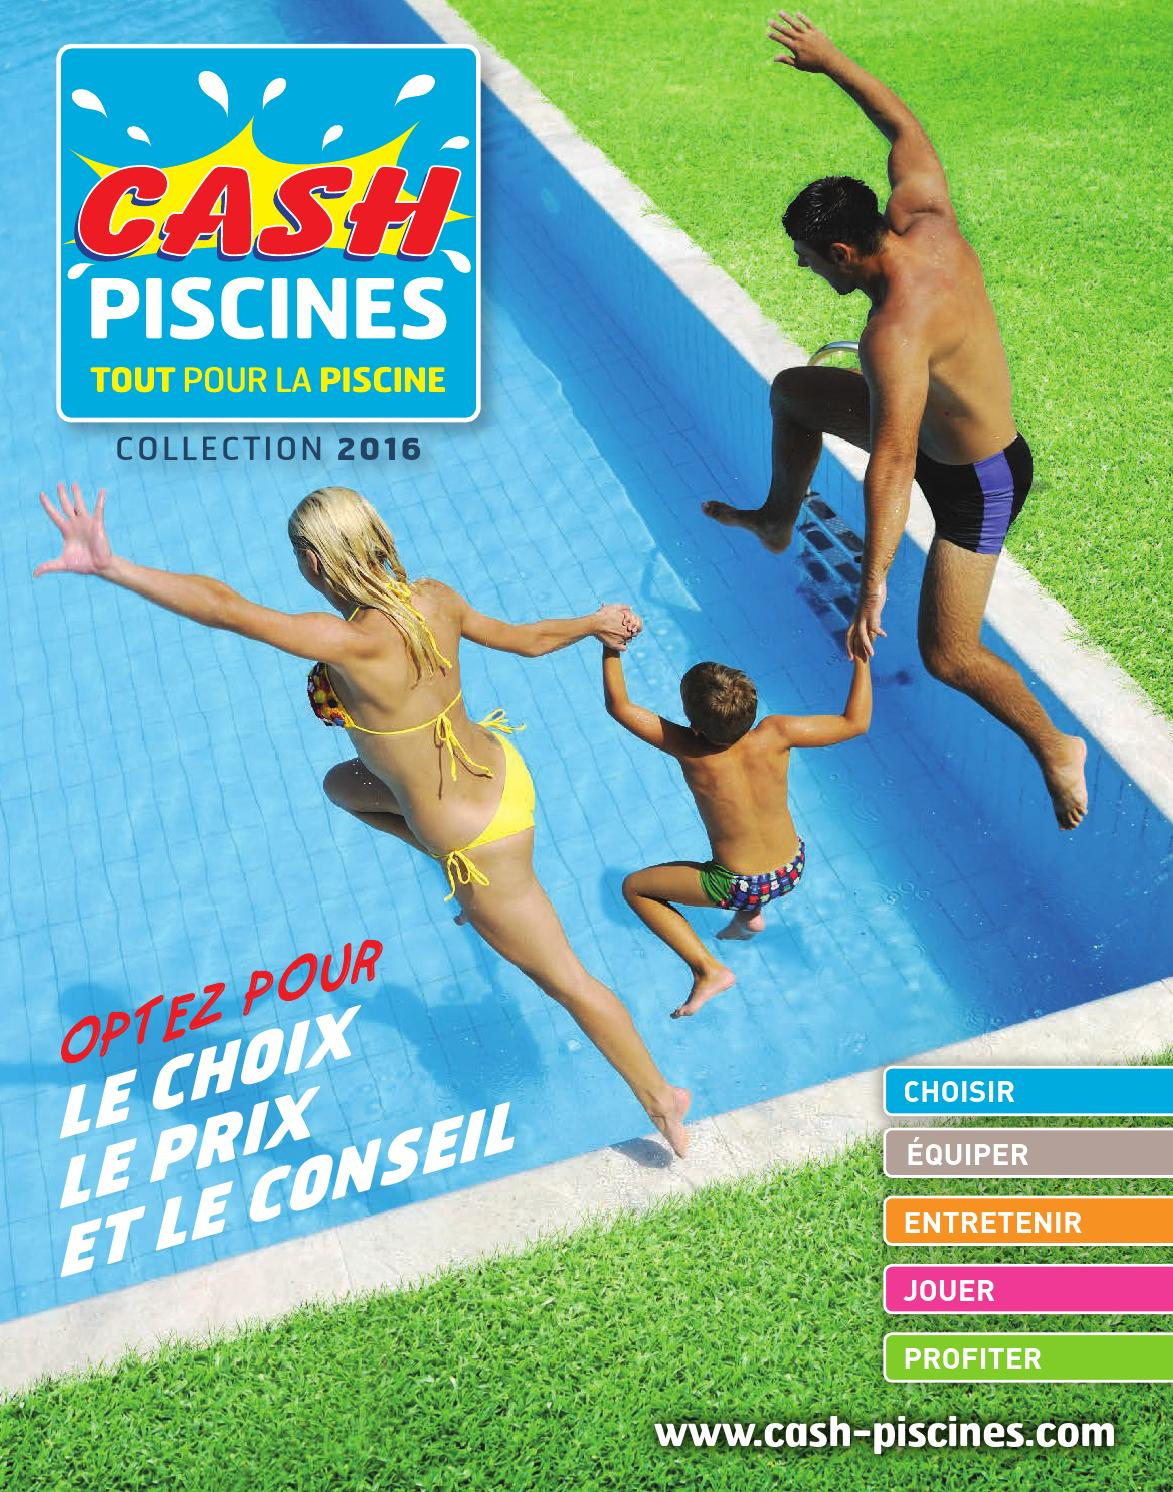 Cash piscines 2016 by octave octave issuu for Cash piscine la teste